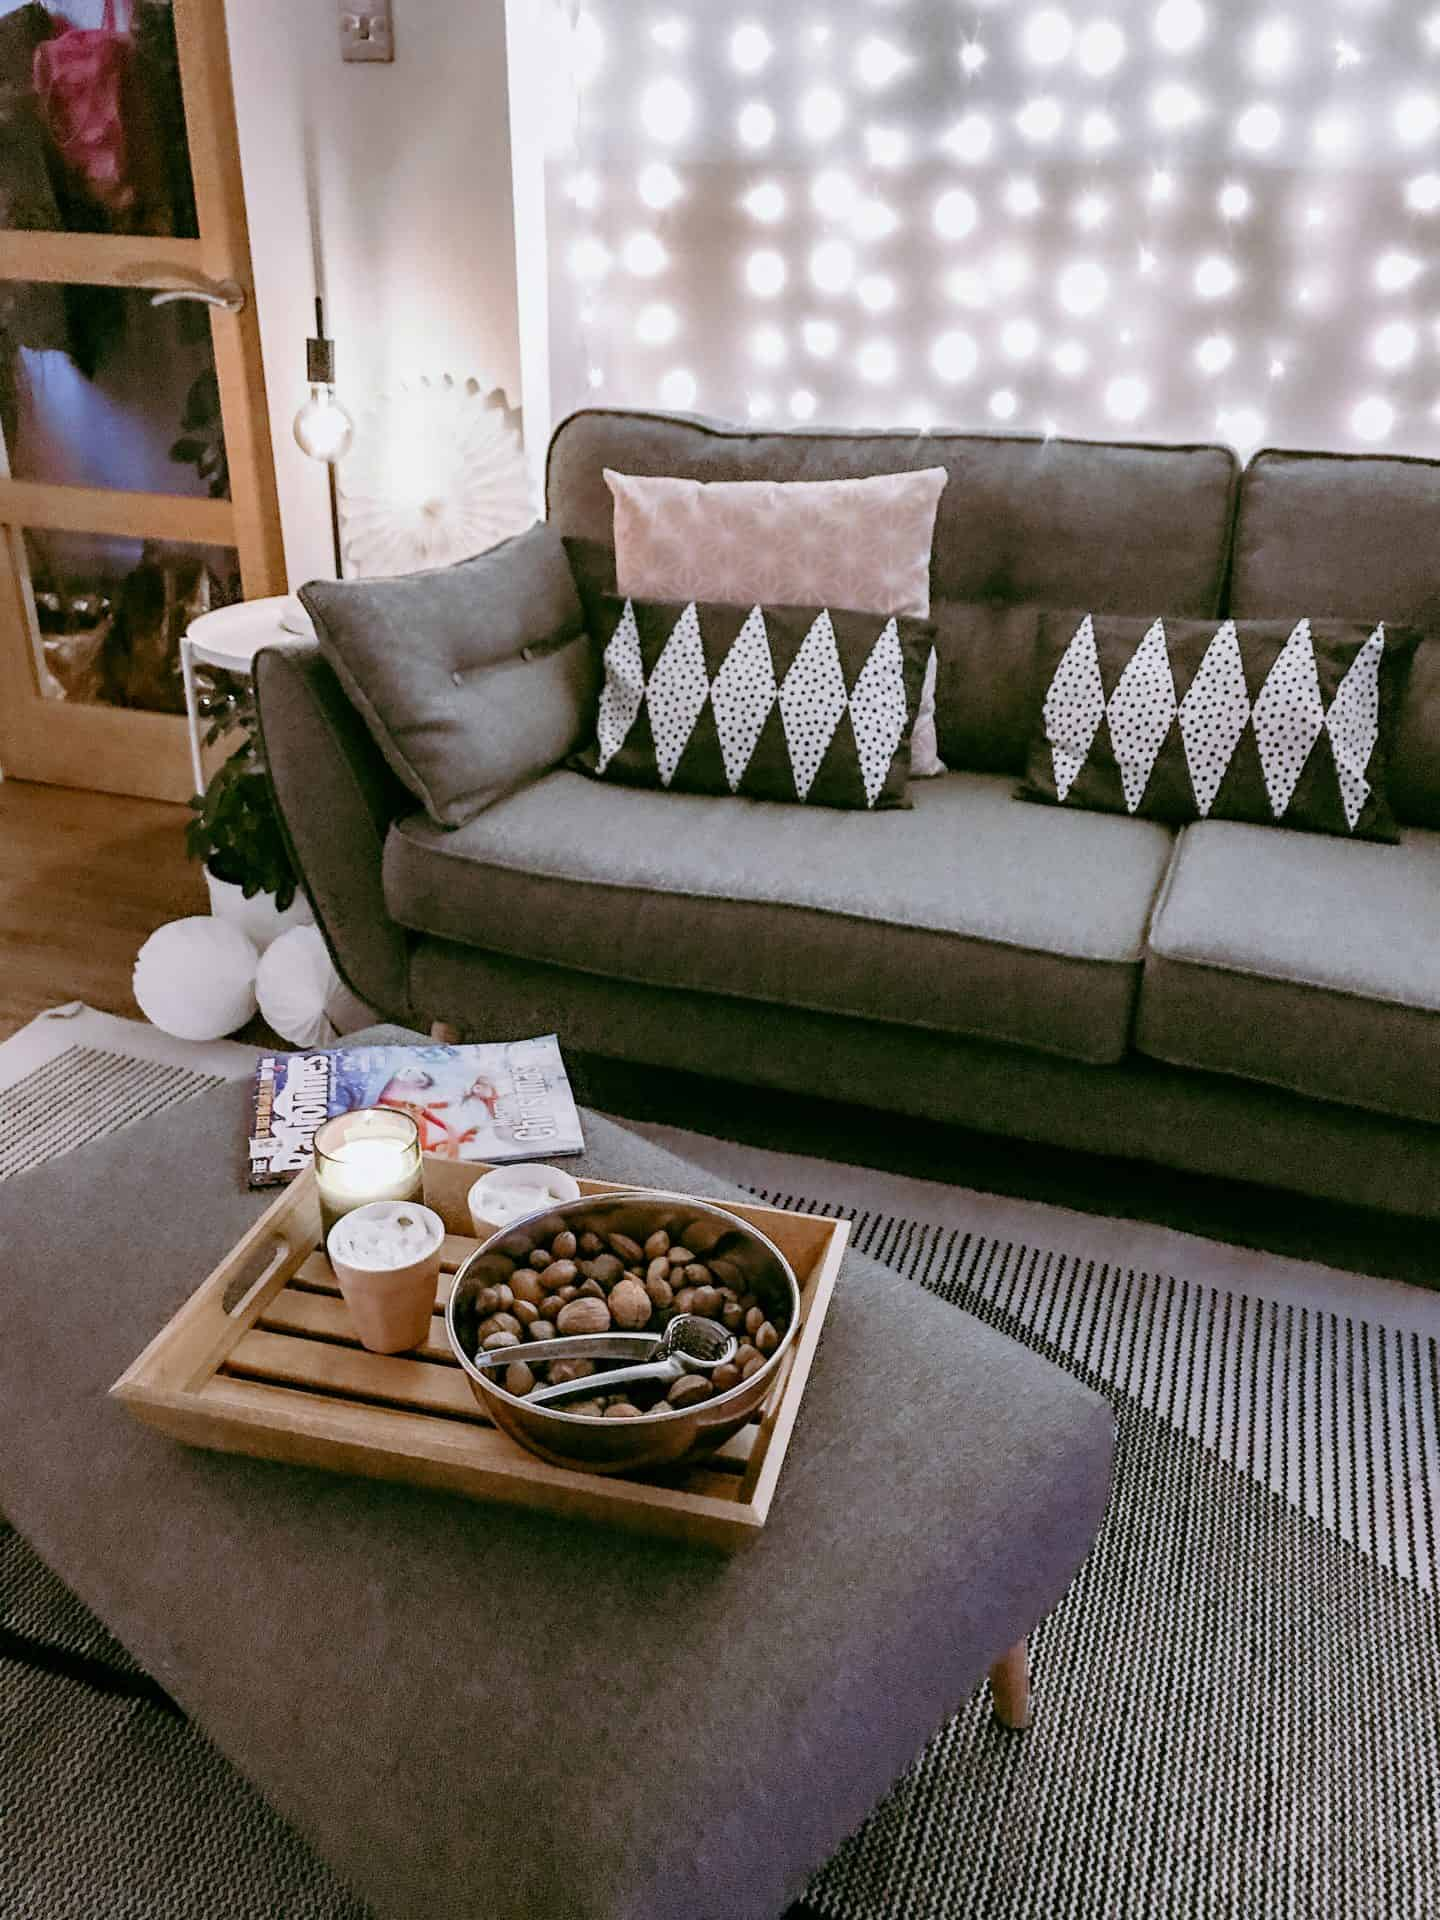 Christmas tray in front of a grey sofa